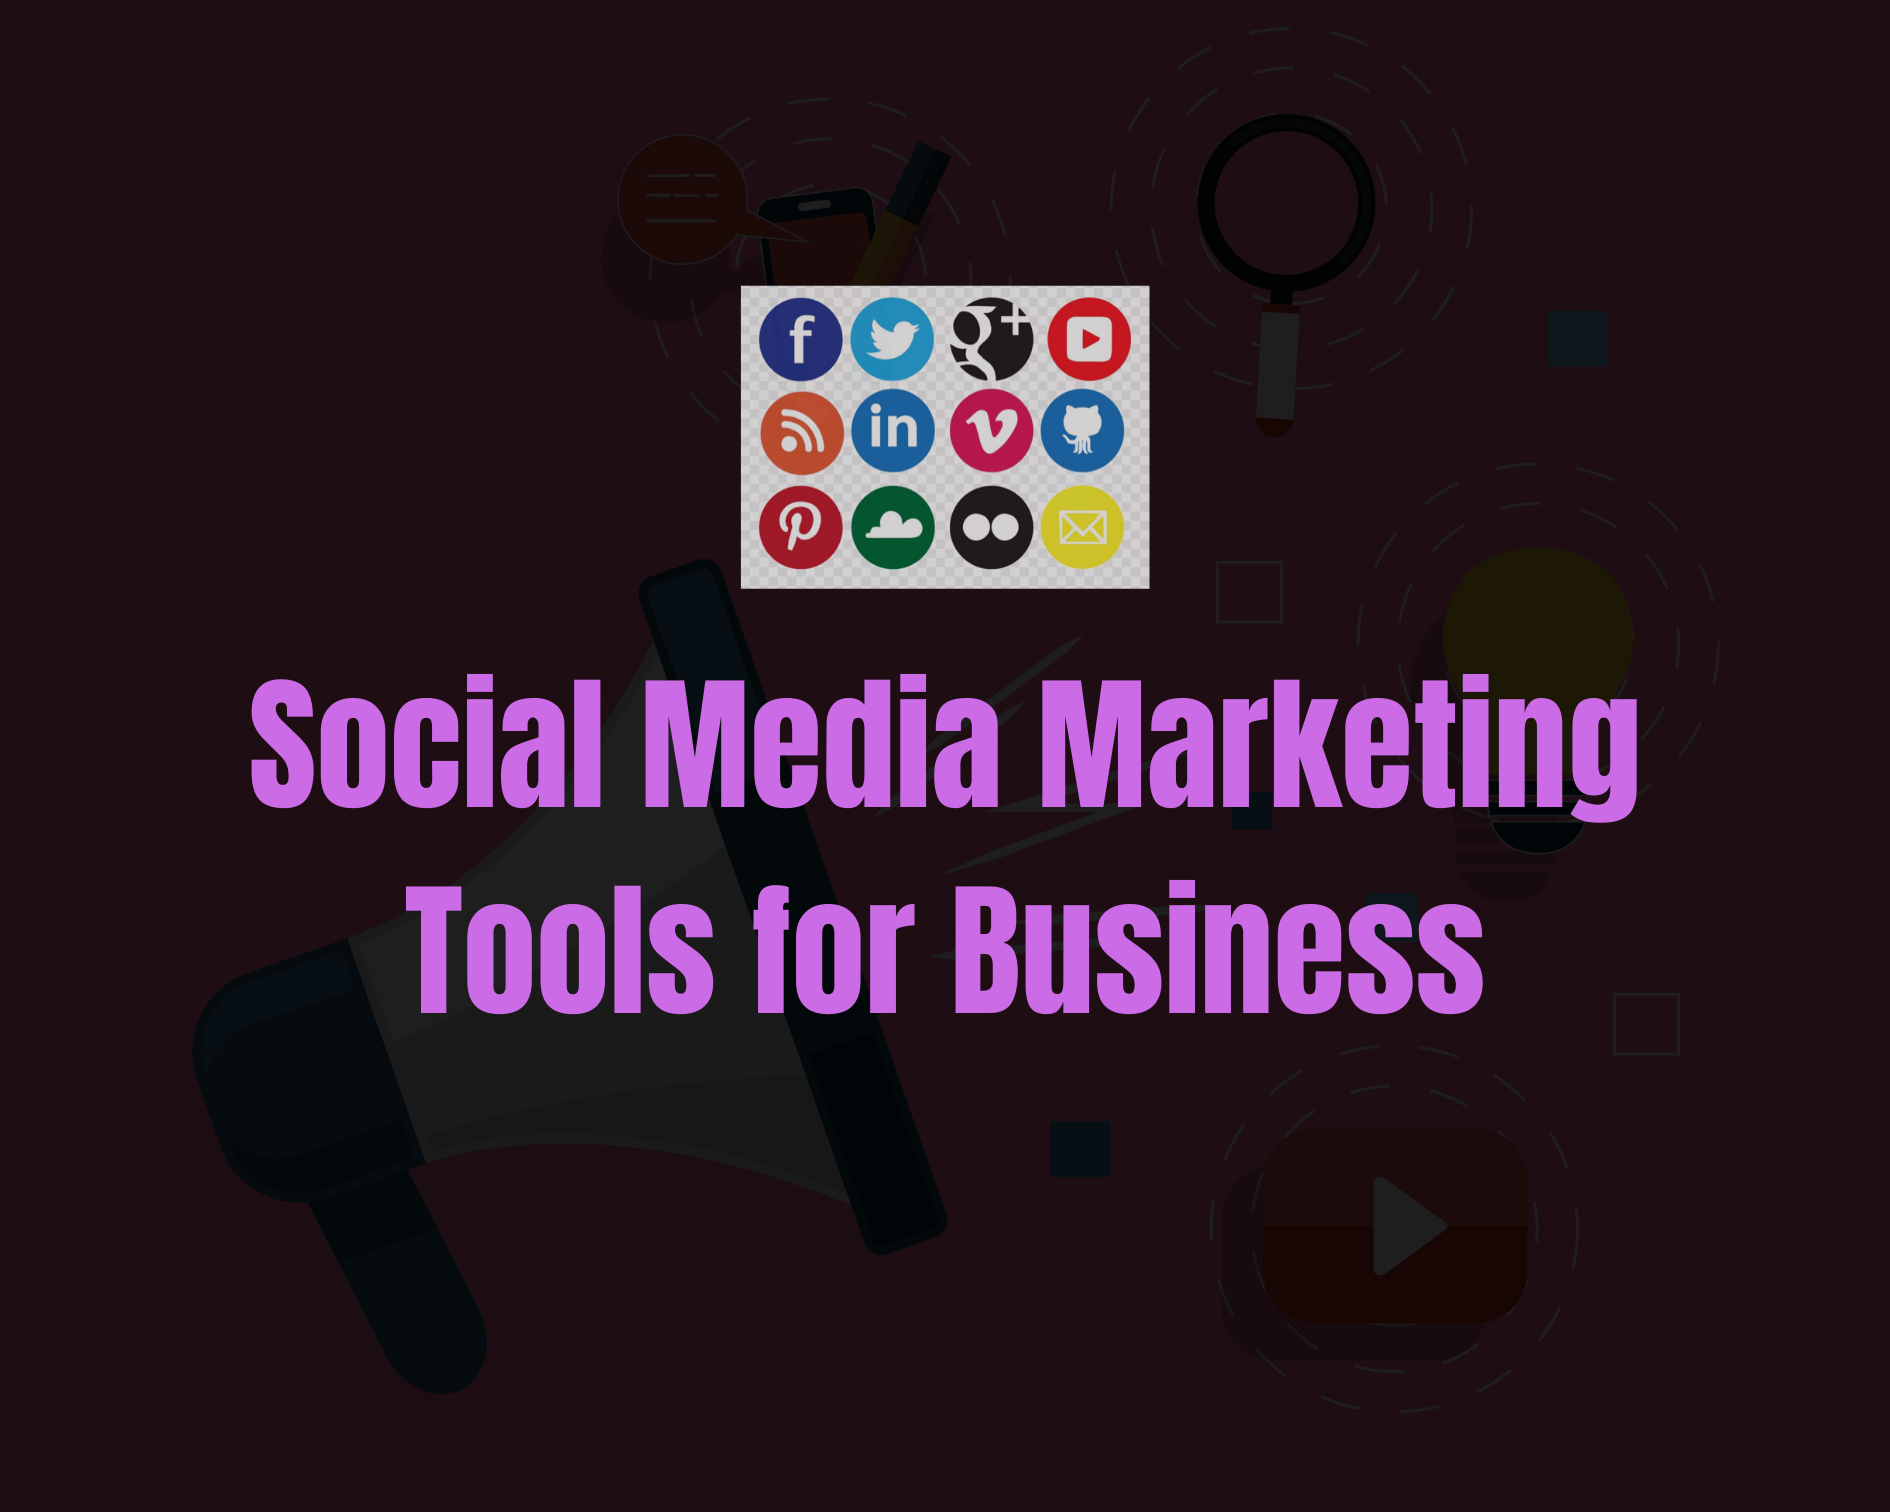 Top 10 Social Media Marketing Tools for Business